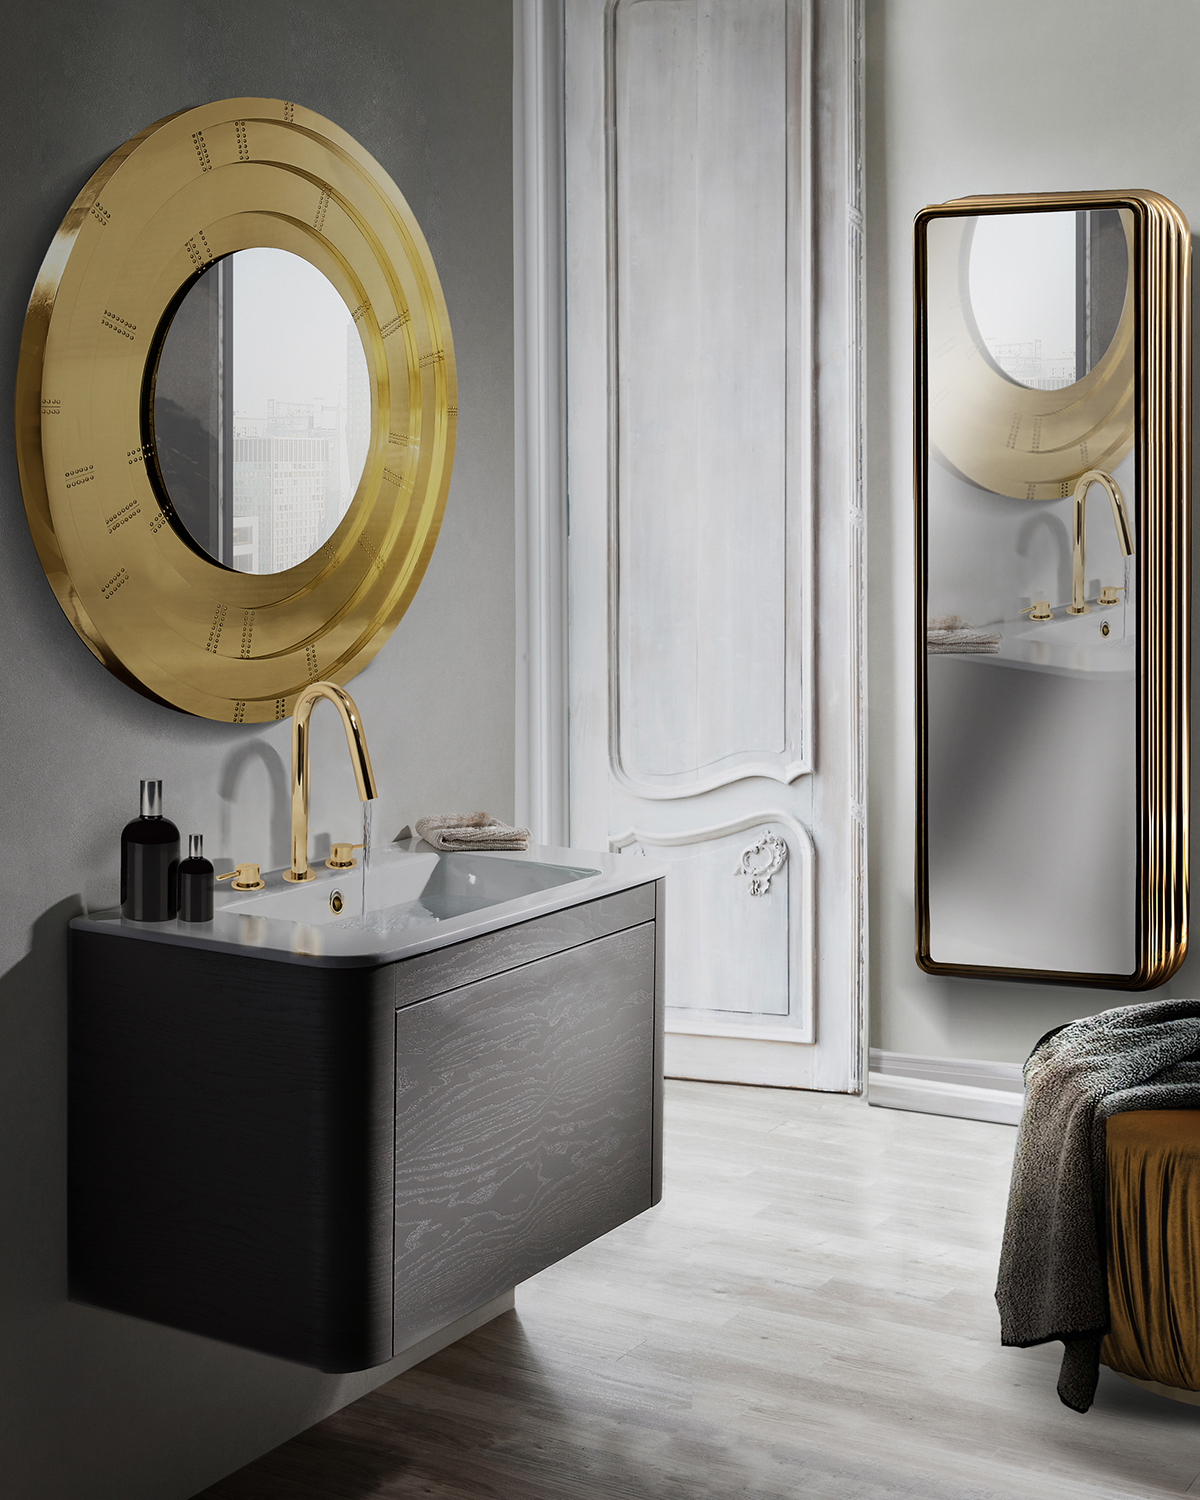 bathroom, golden bathroom, gold,maison valentina, bathub, mirror, rug, tap, bathroom decoration, bathroom decor bathroom design Add a Touch of Gold to Your Bathroom – 5 Ideas to Make it Shine 5 ideas to add a touch of gold to your bathroom 7